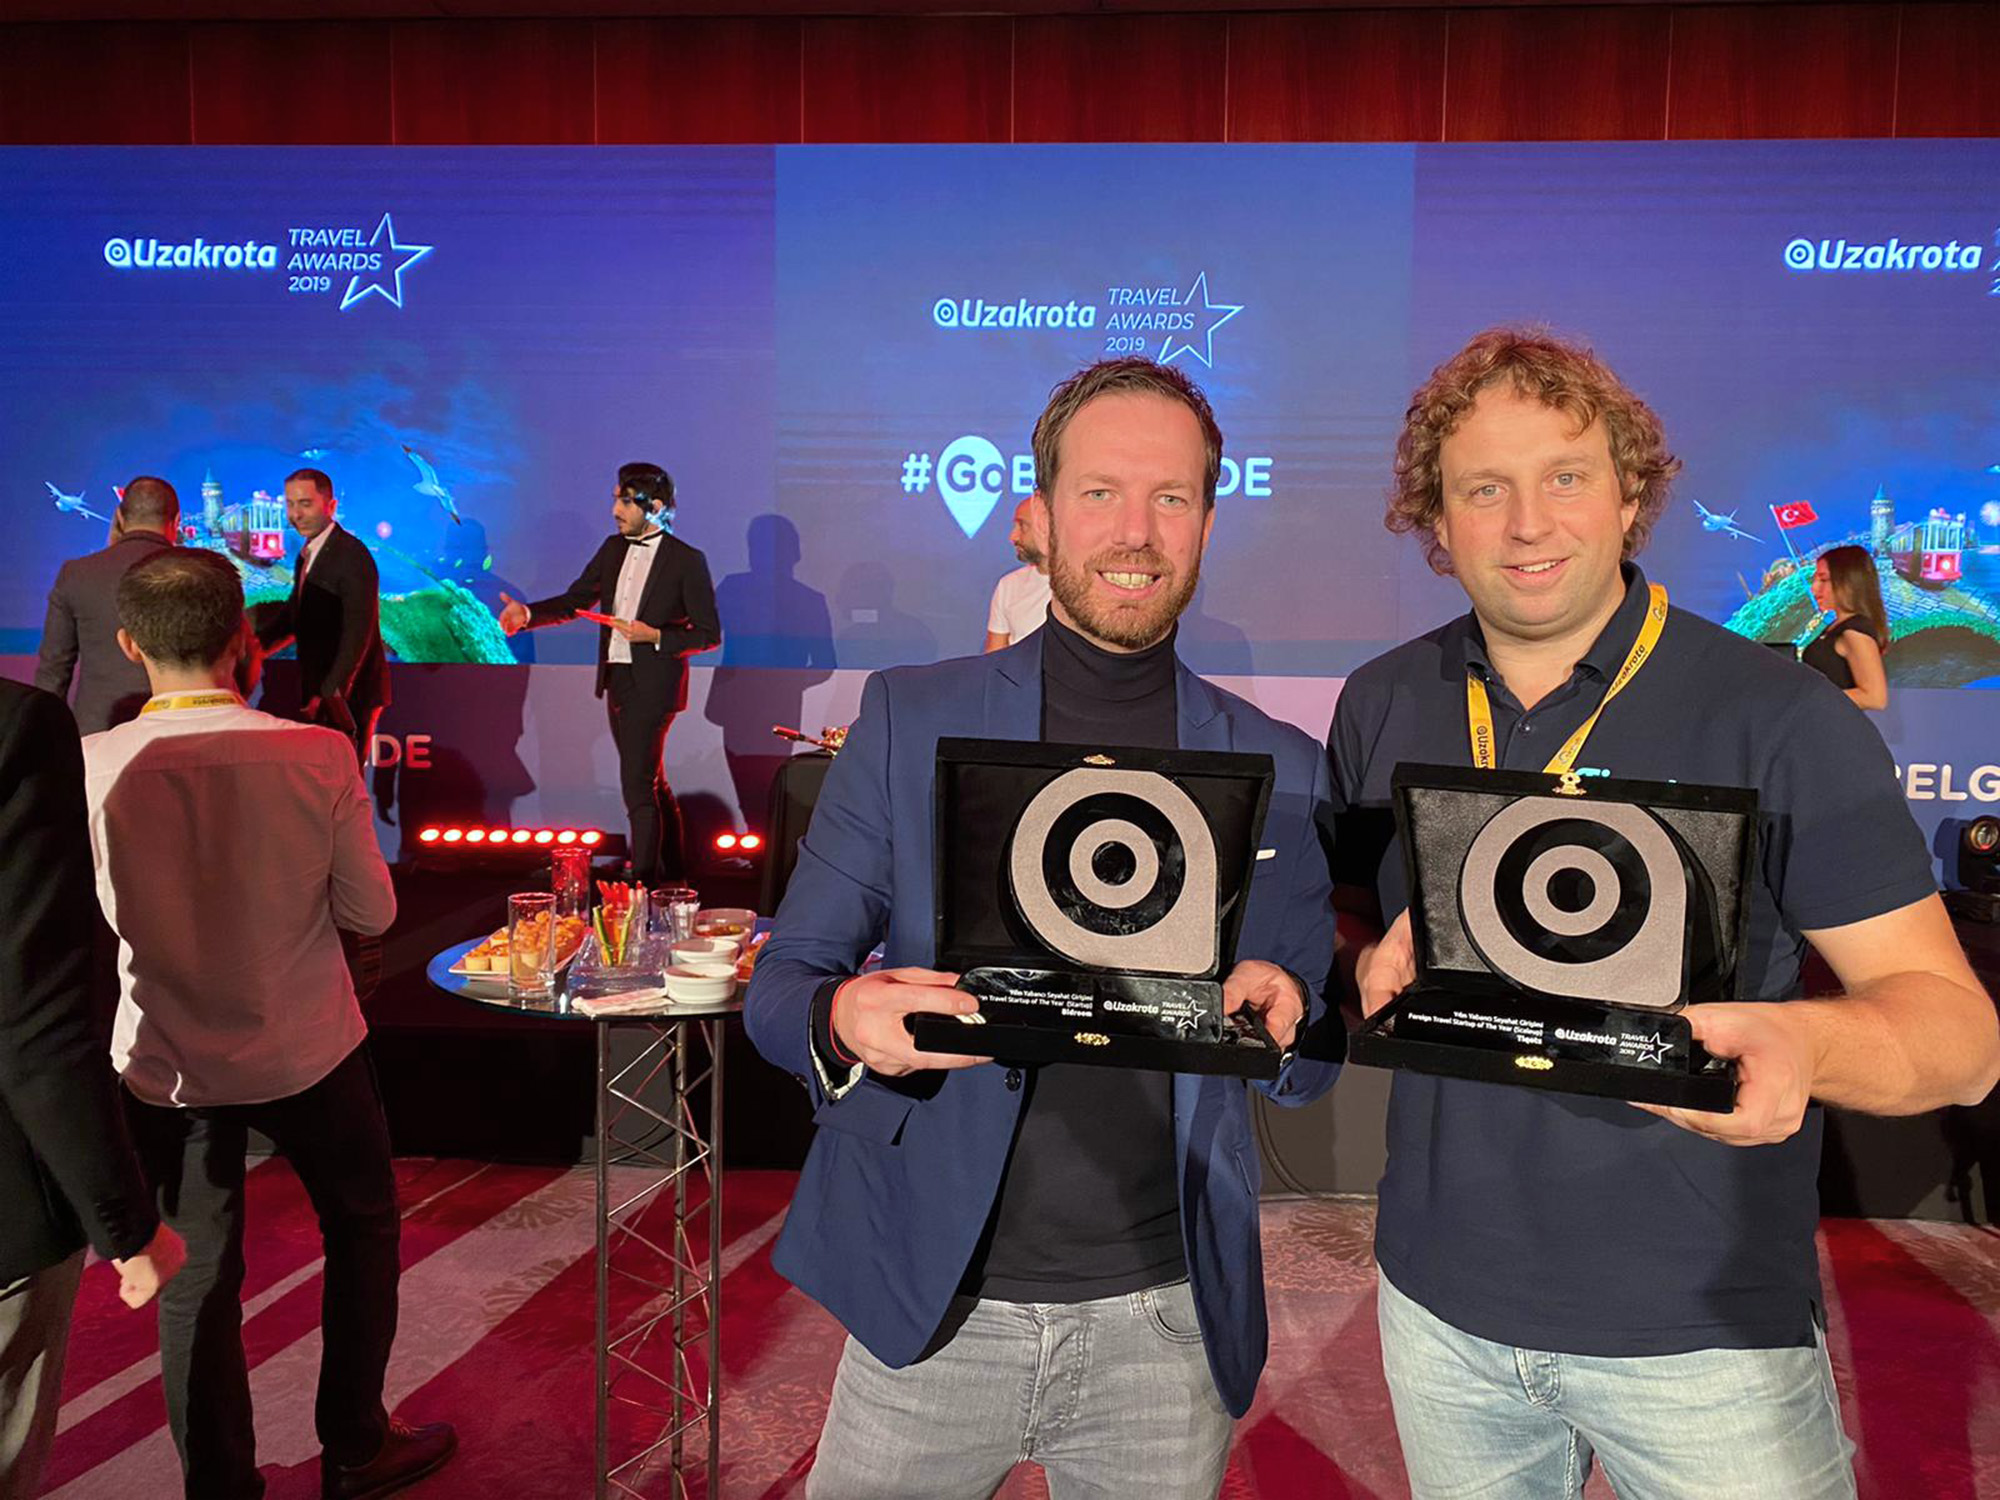 Uzakrota Travel Summit 2019 awards.jpg